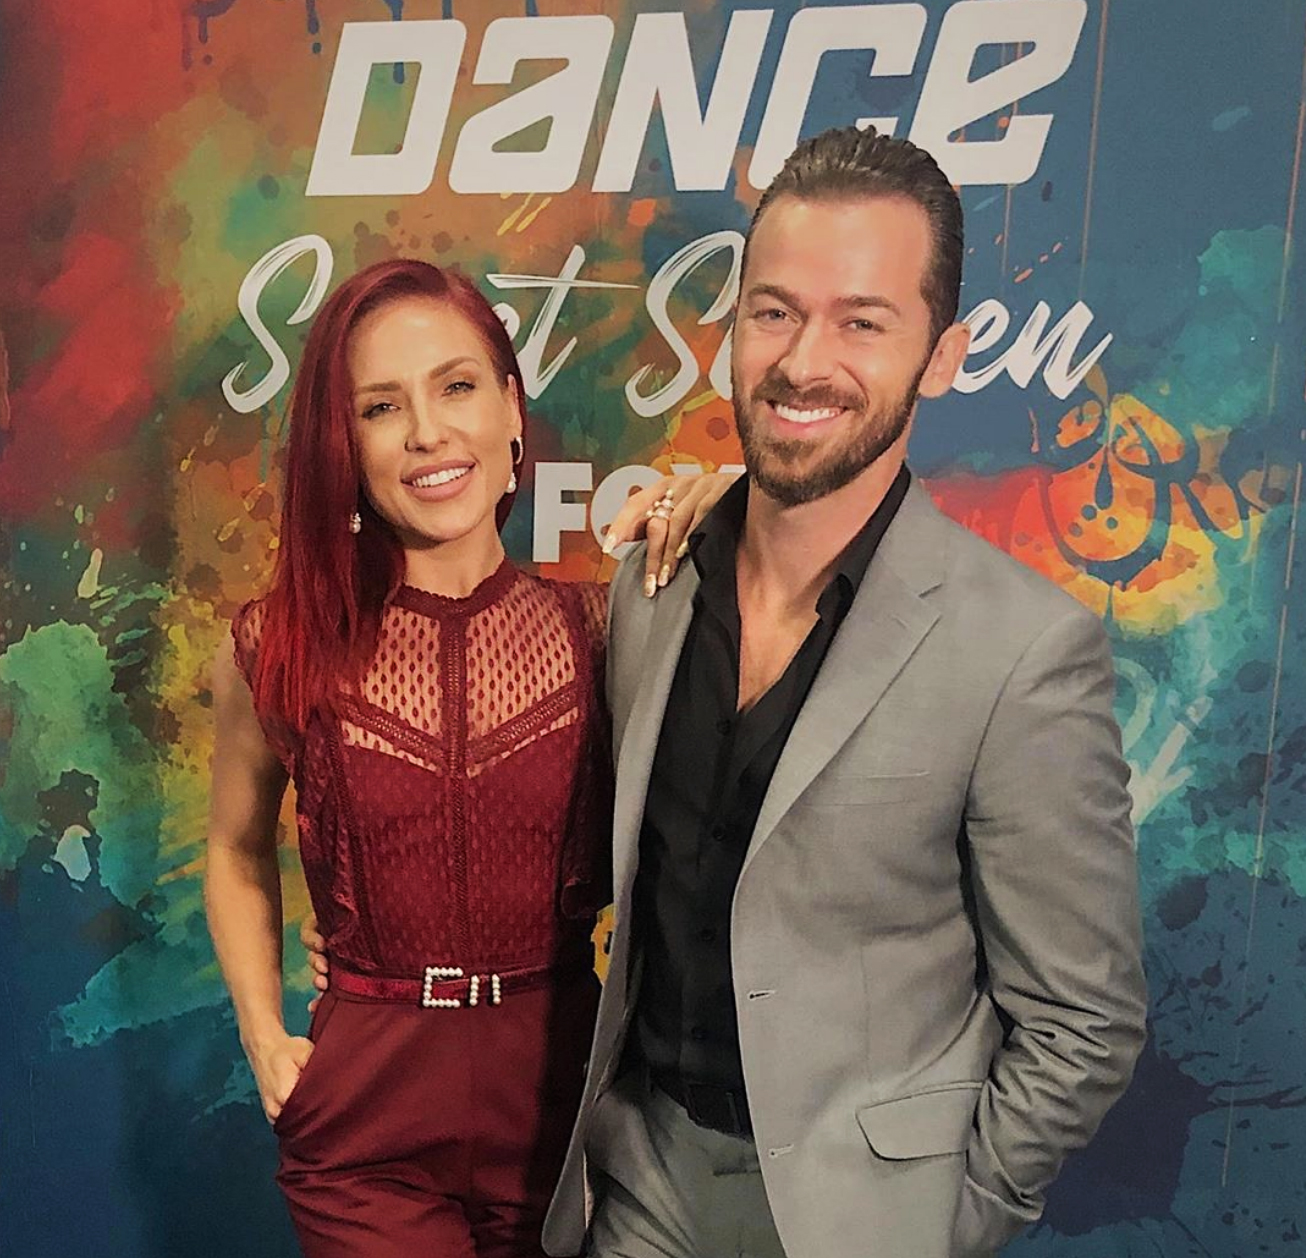 Sharna-Burgess-and-Artem-Chigvintsev-So-You-Think-You-Can-Dance